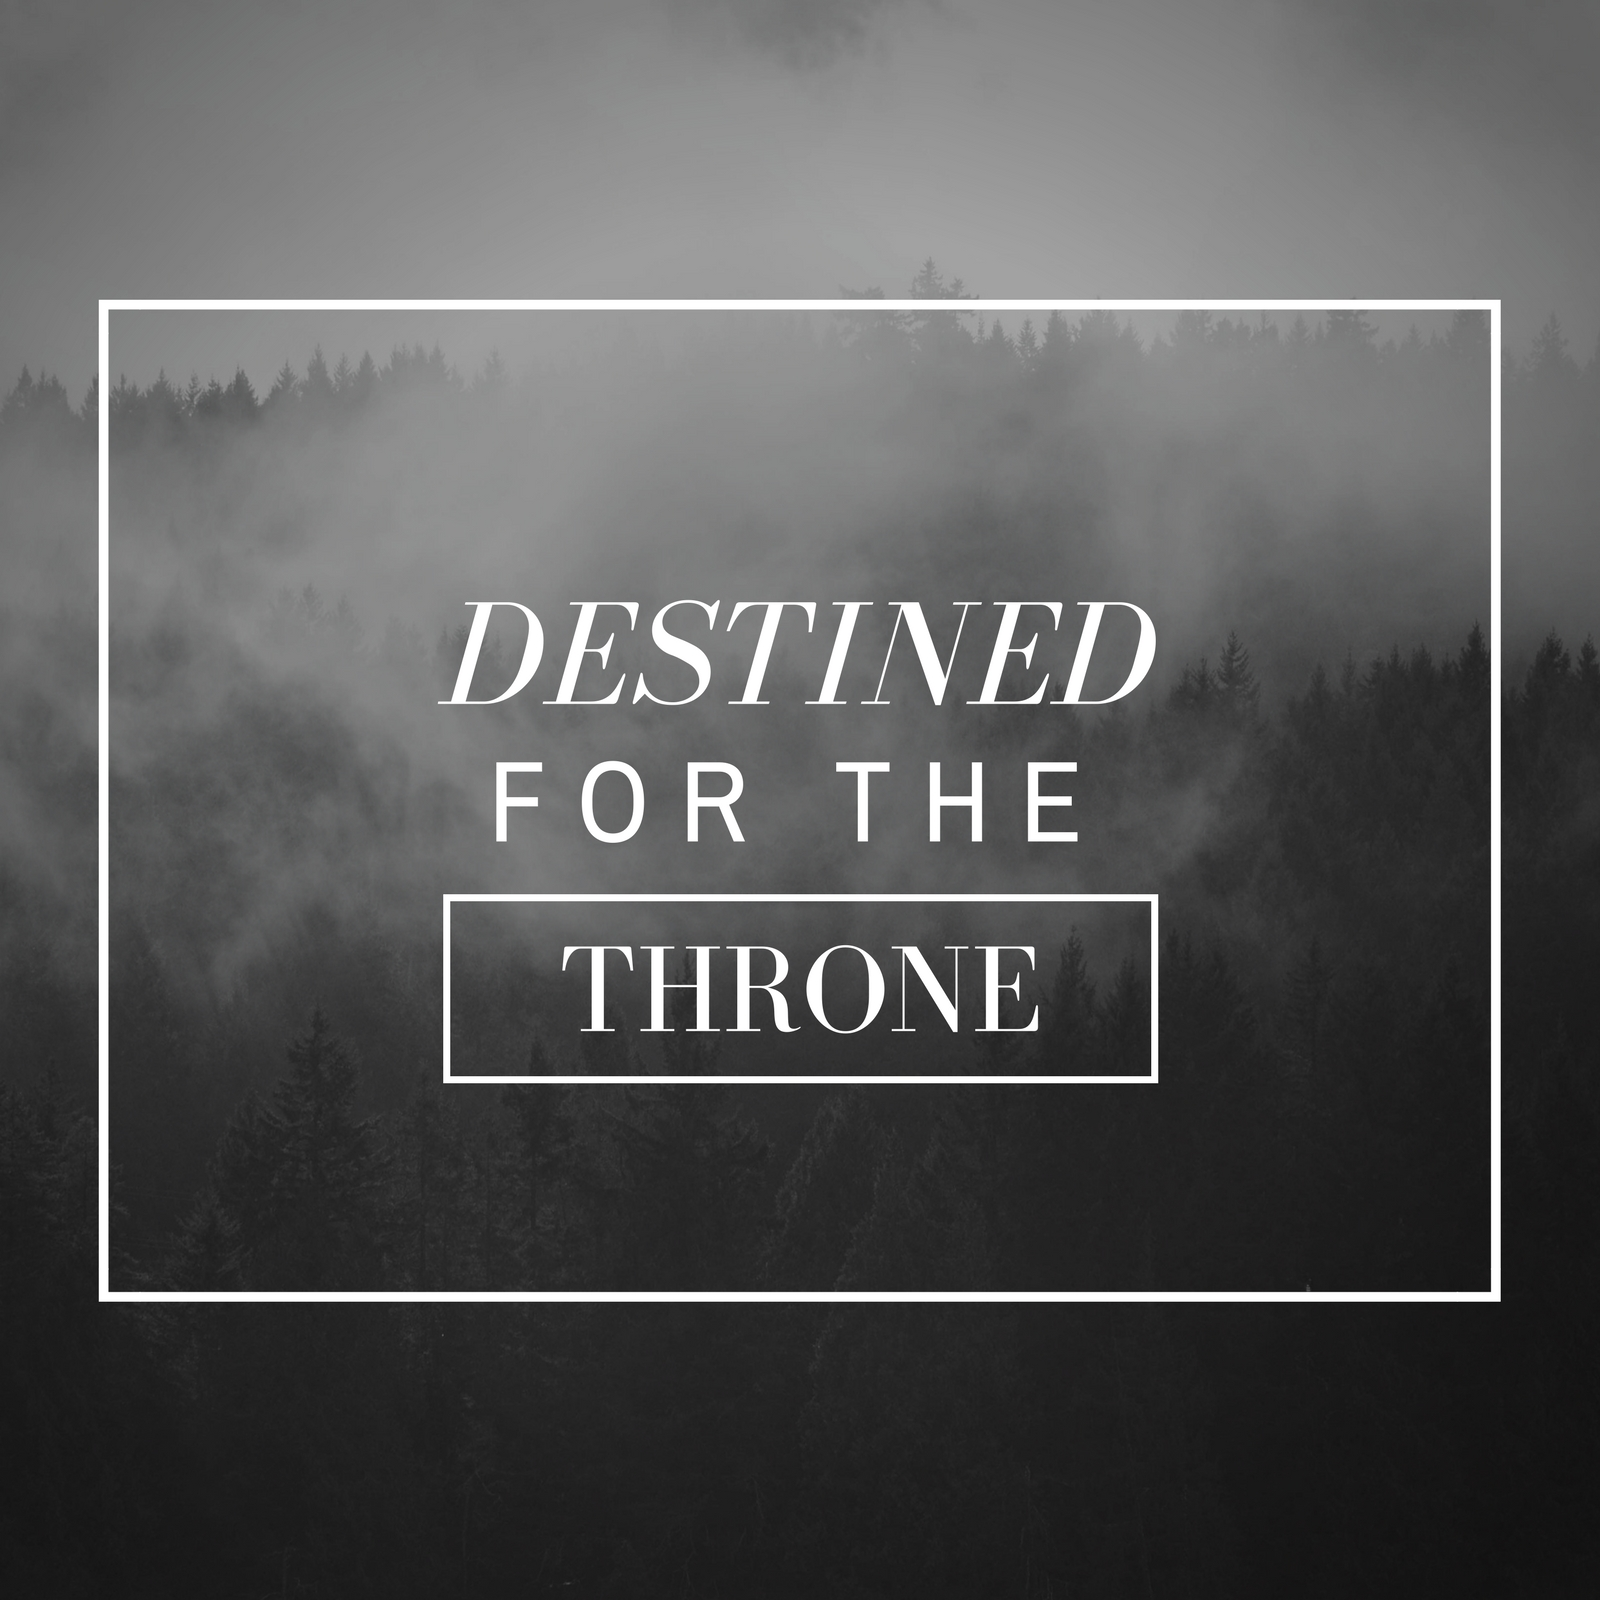 Destined for the Throne 5